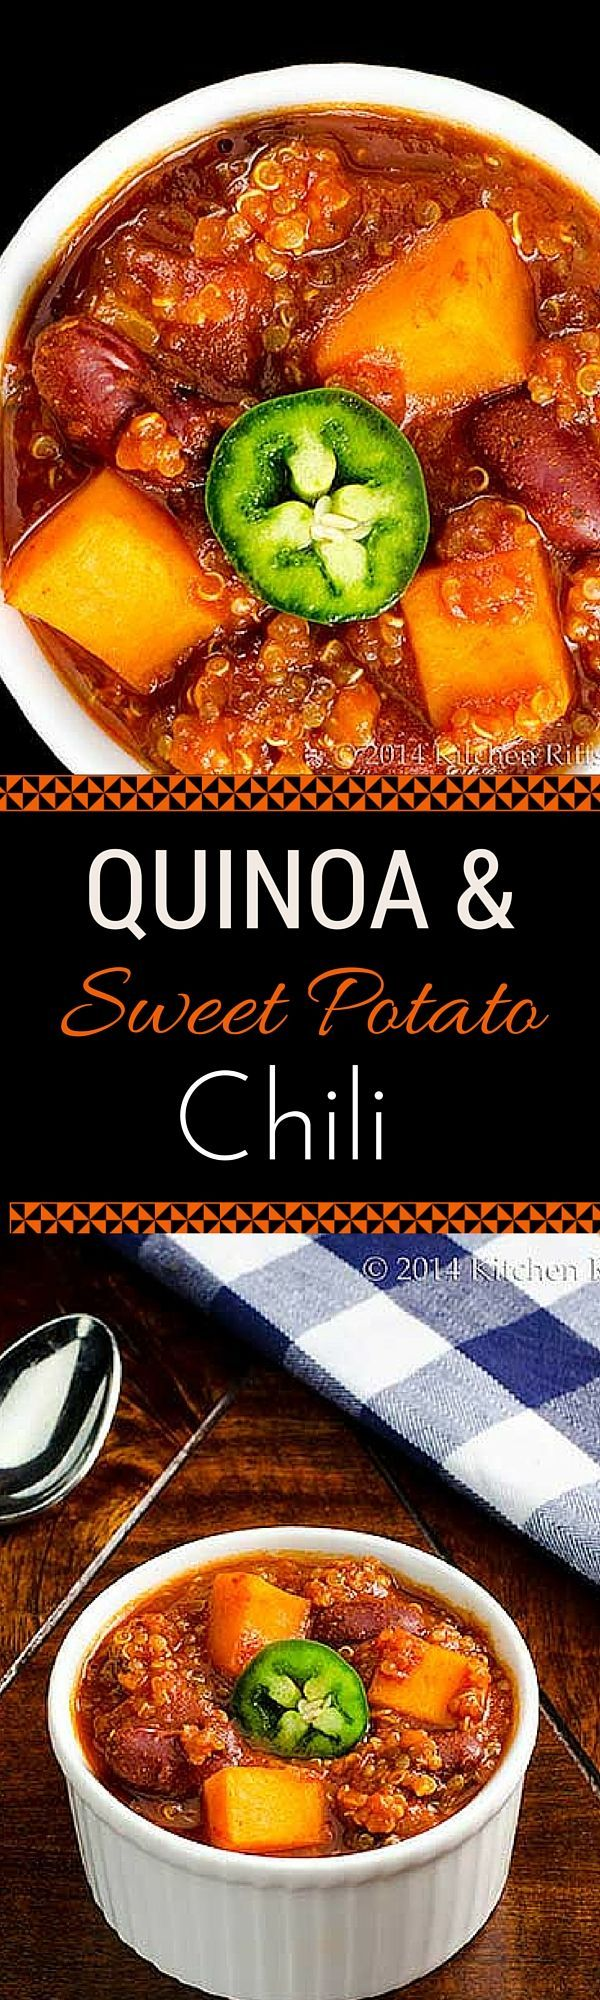 Quinoa and Sweet Potato Chili - This amazing vegan chili has all of the flavor and none of the fat of traditional chili.  You won't believe how delicious it is!